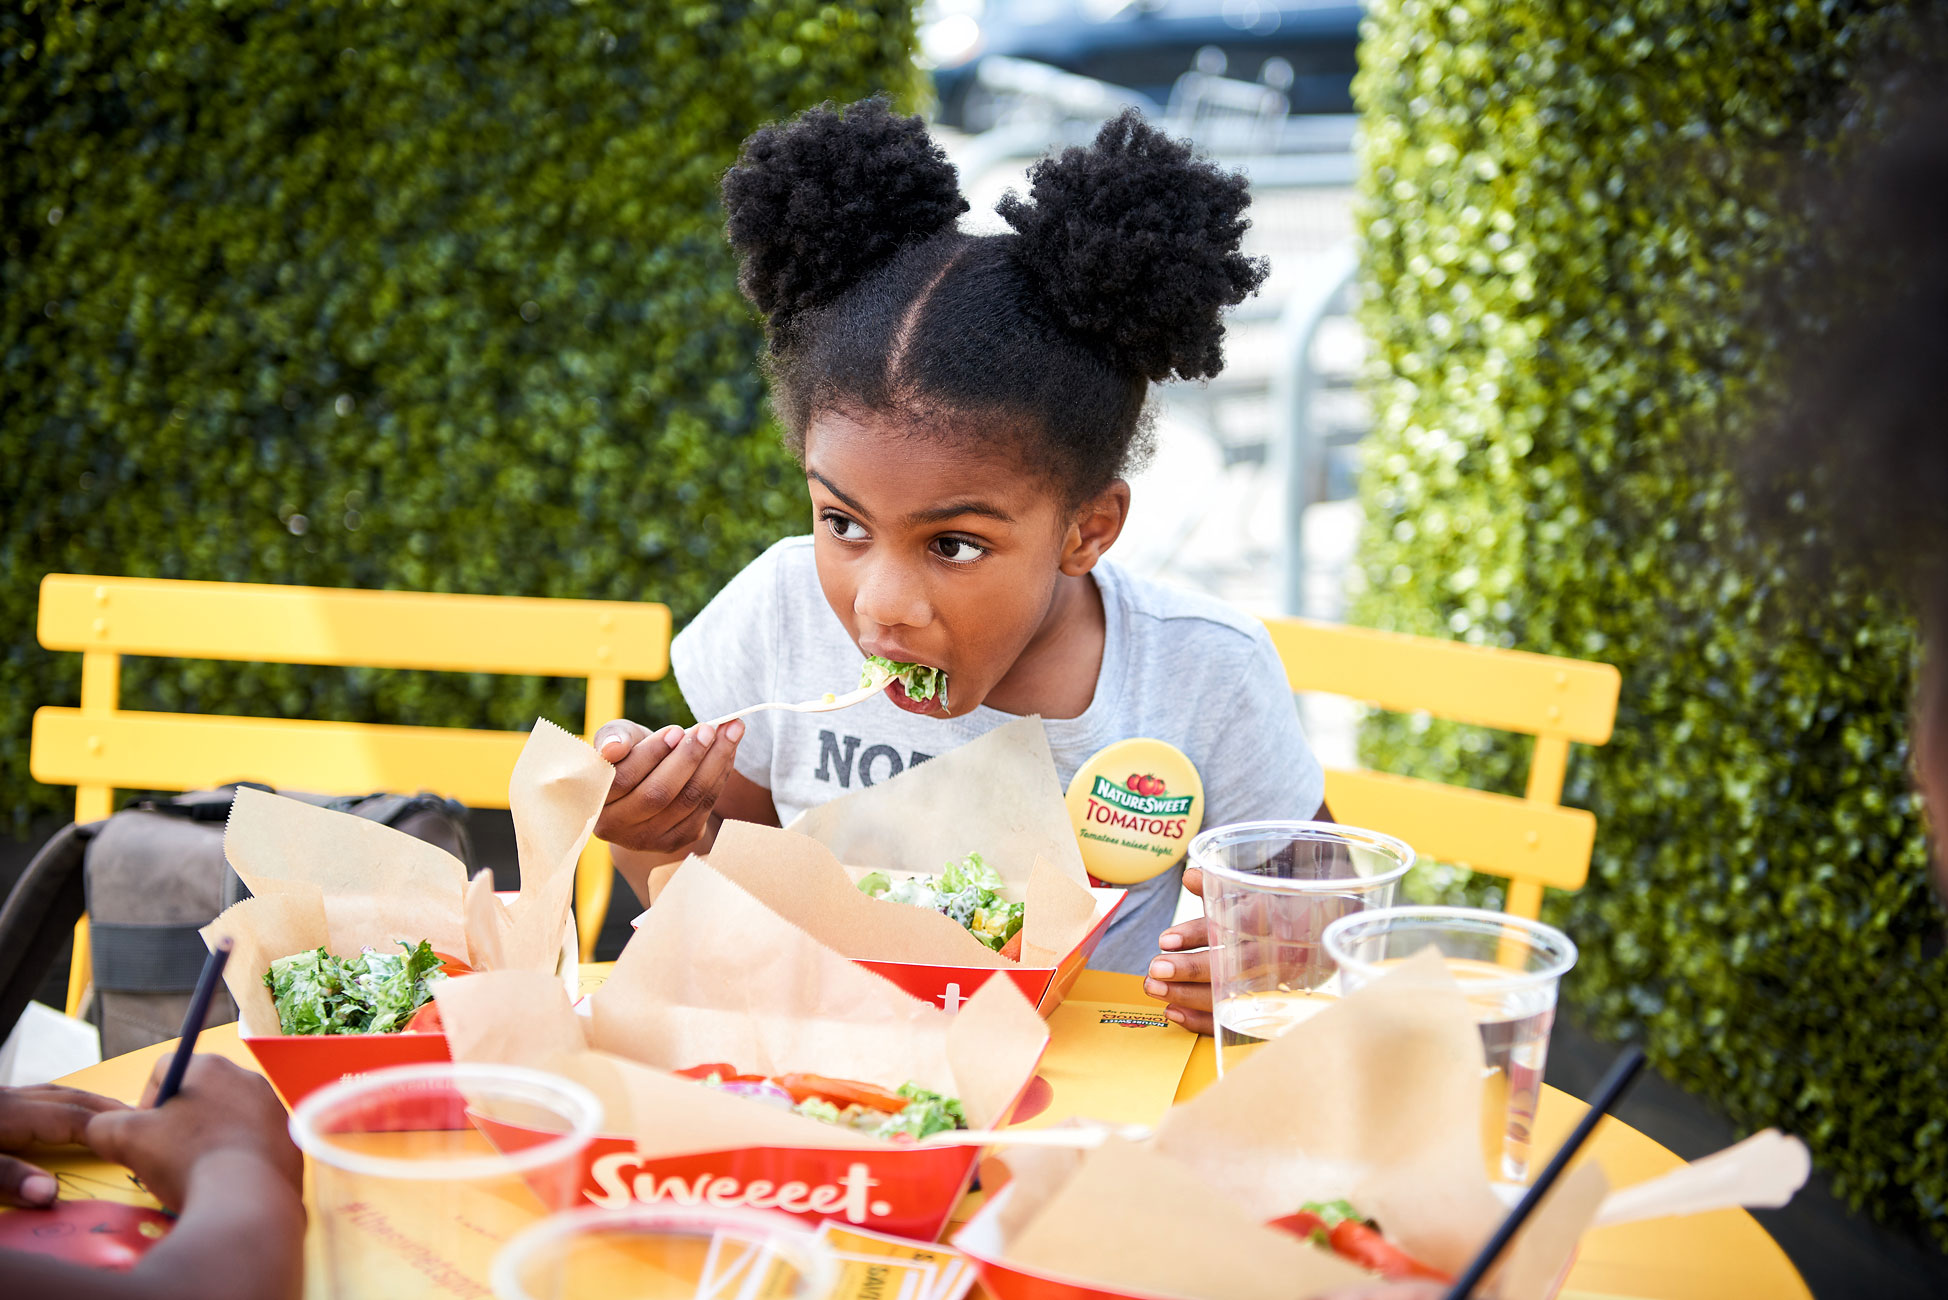 Girl with pigtails eating salad at outside yellow table.